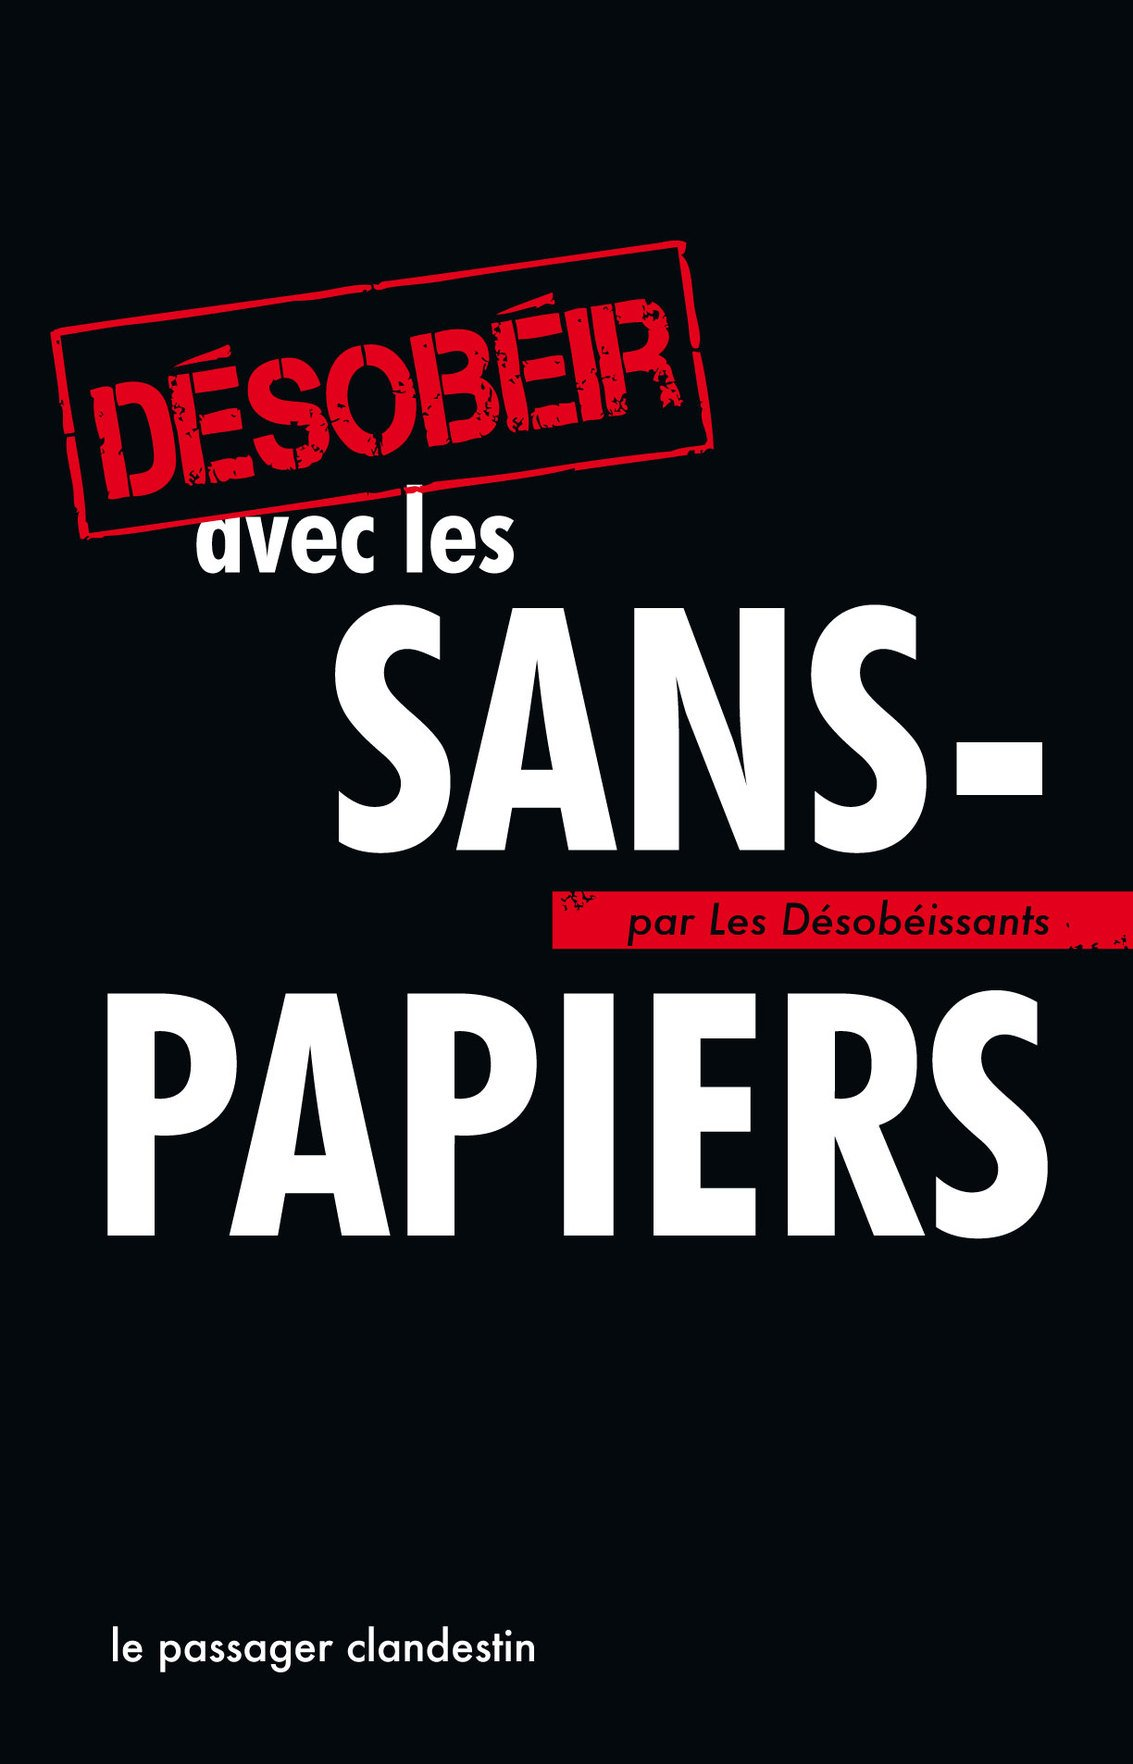 couverture.jpg